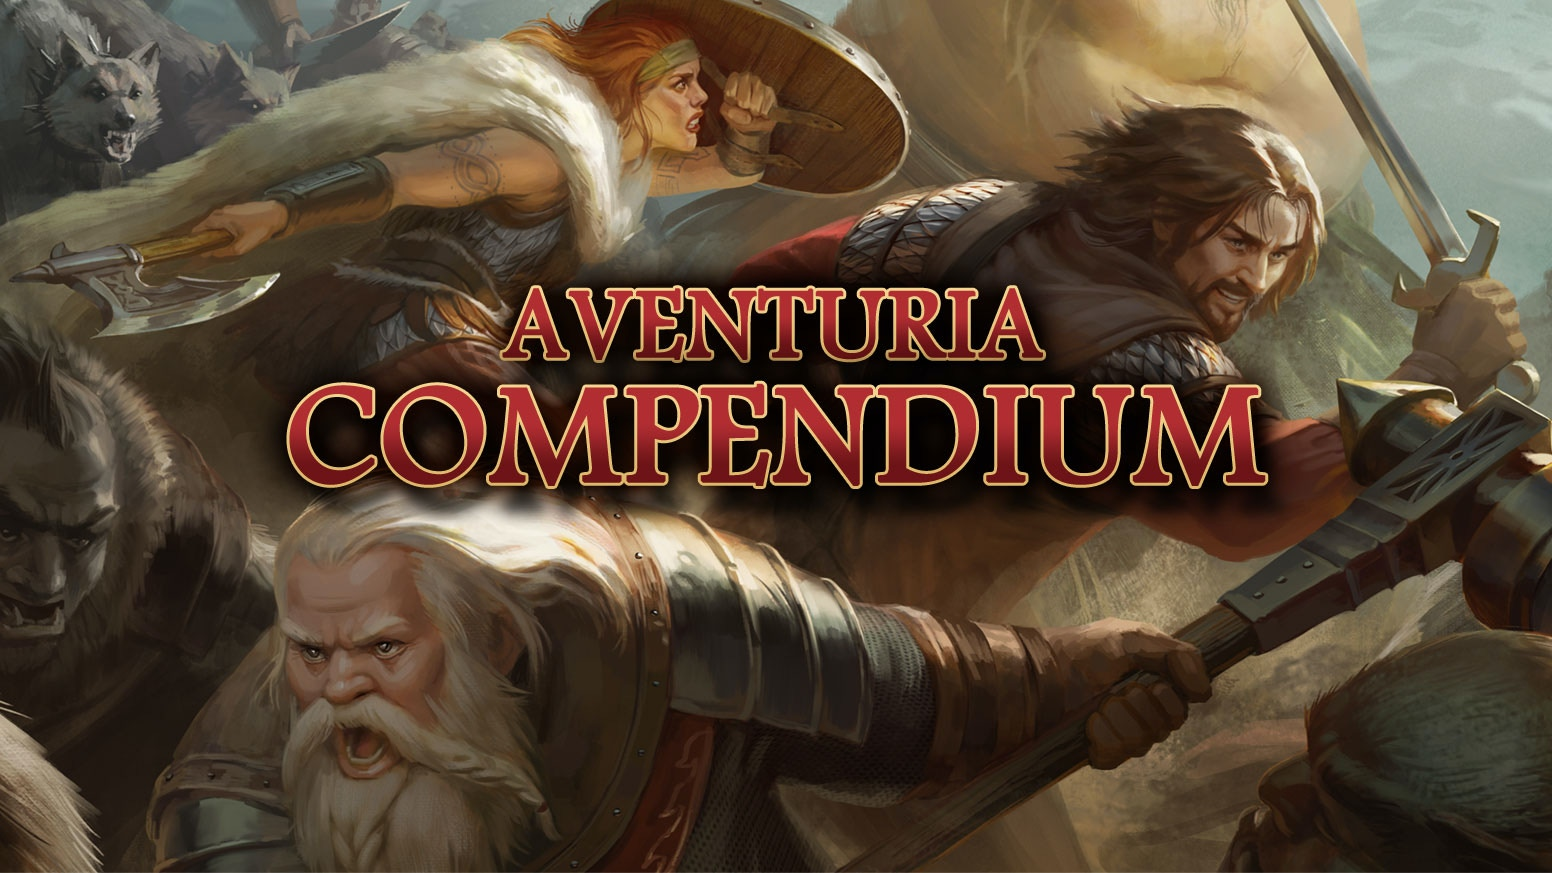 Aventuria Compendium - The Dark Eye RPG